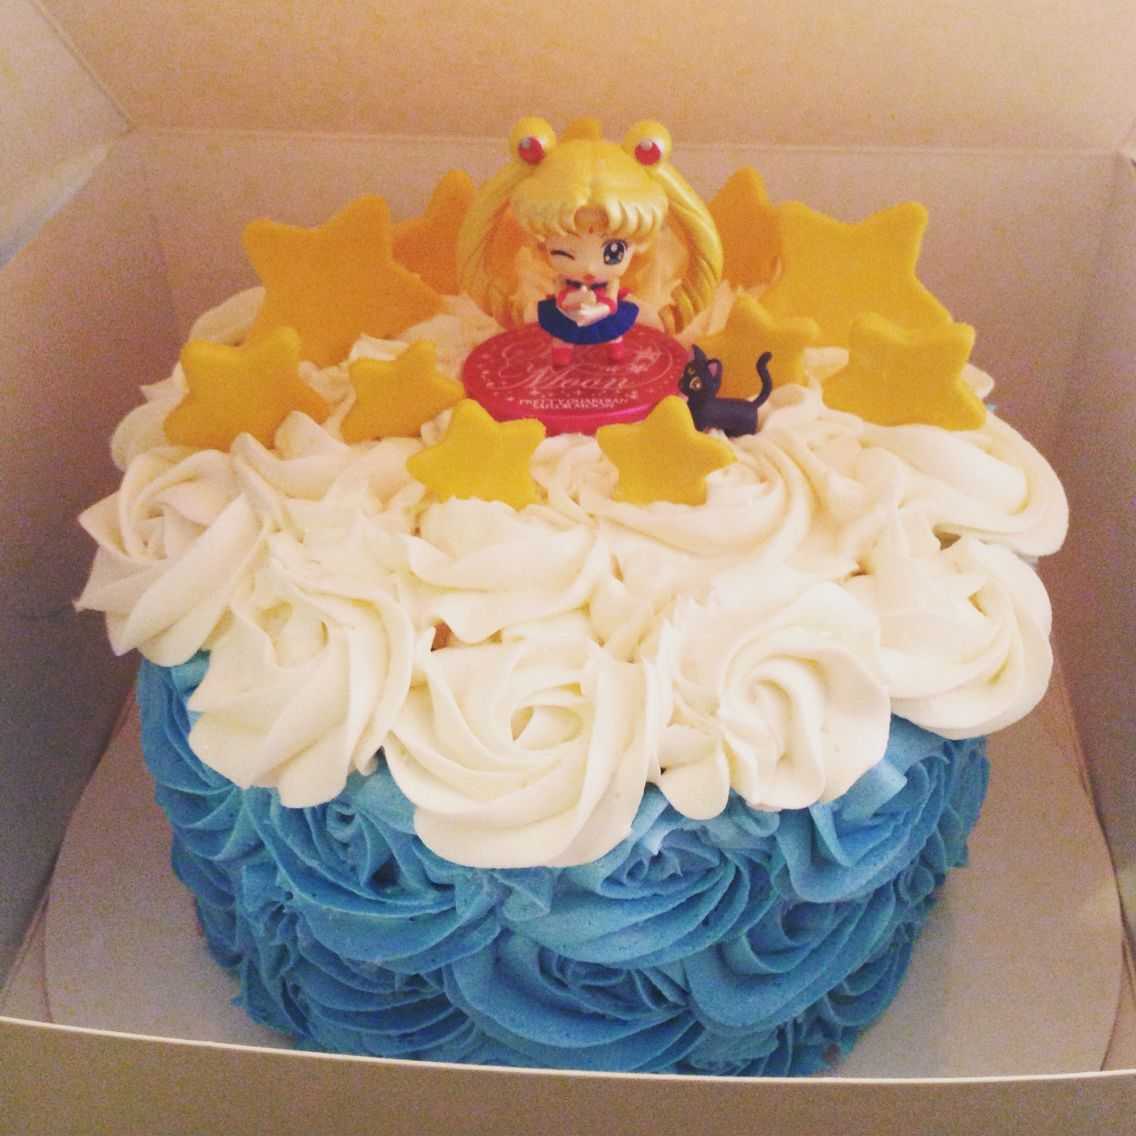 Magnificent Sailor Moon Cake For The Birthday Girl With Images Sailor Moon Personalised Birthday Cards Paralily Jamesorg